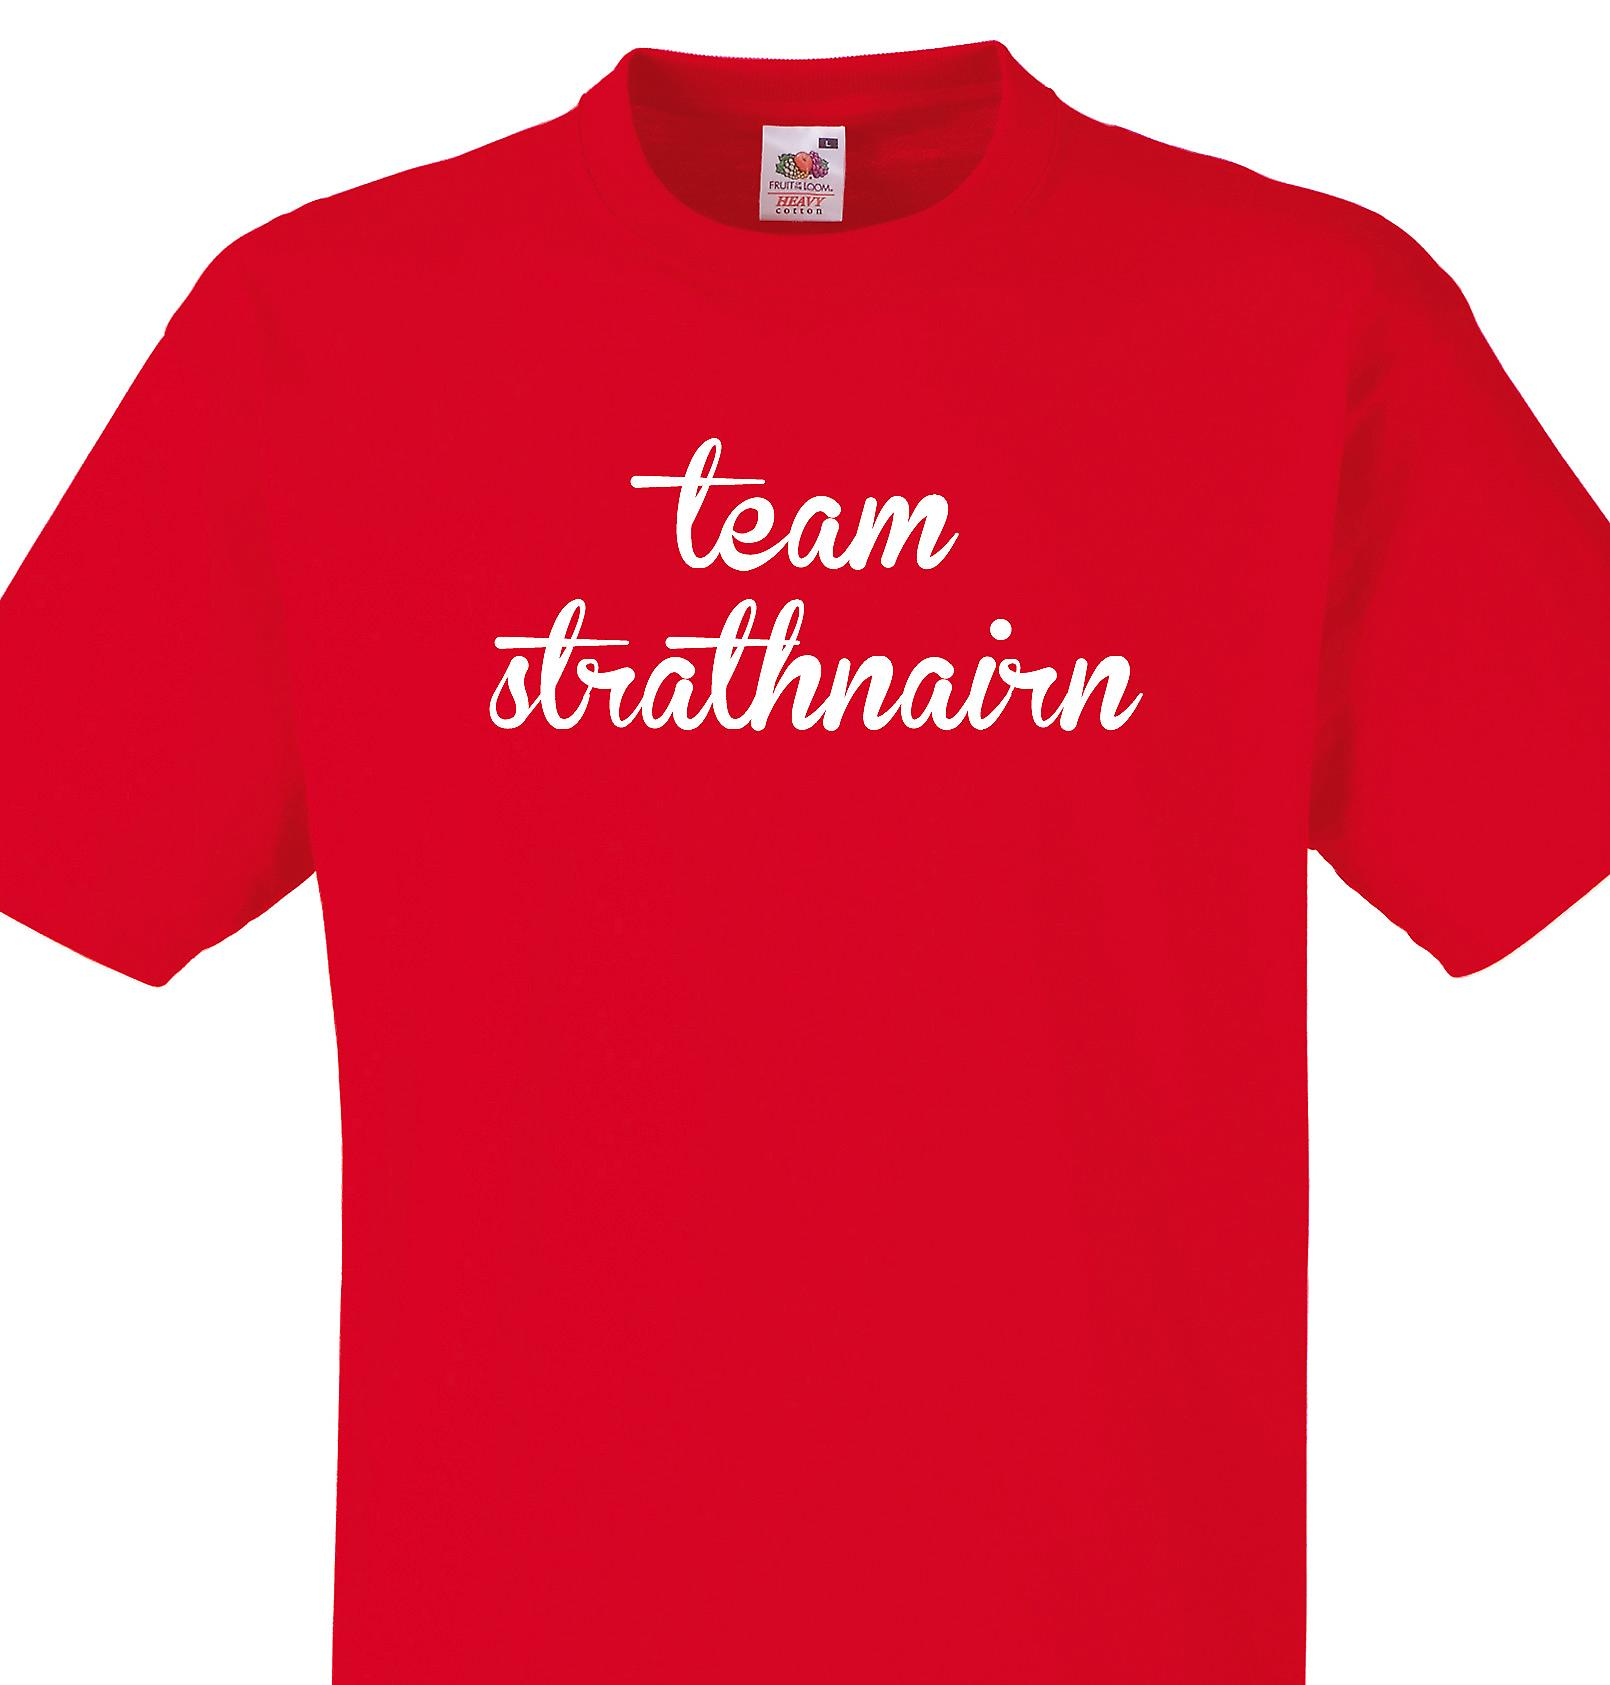 Team Strathnairn Red T shirt